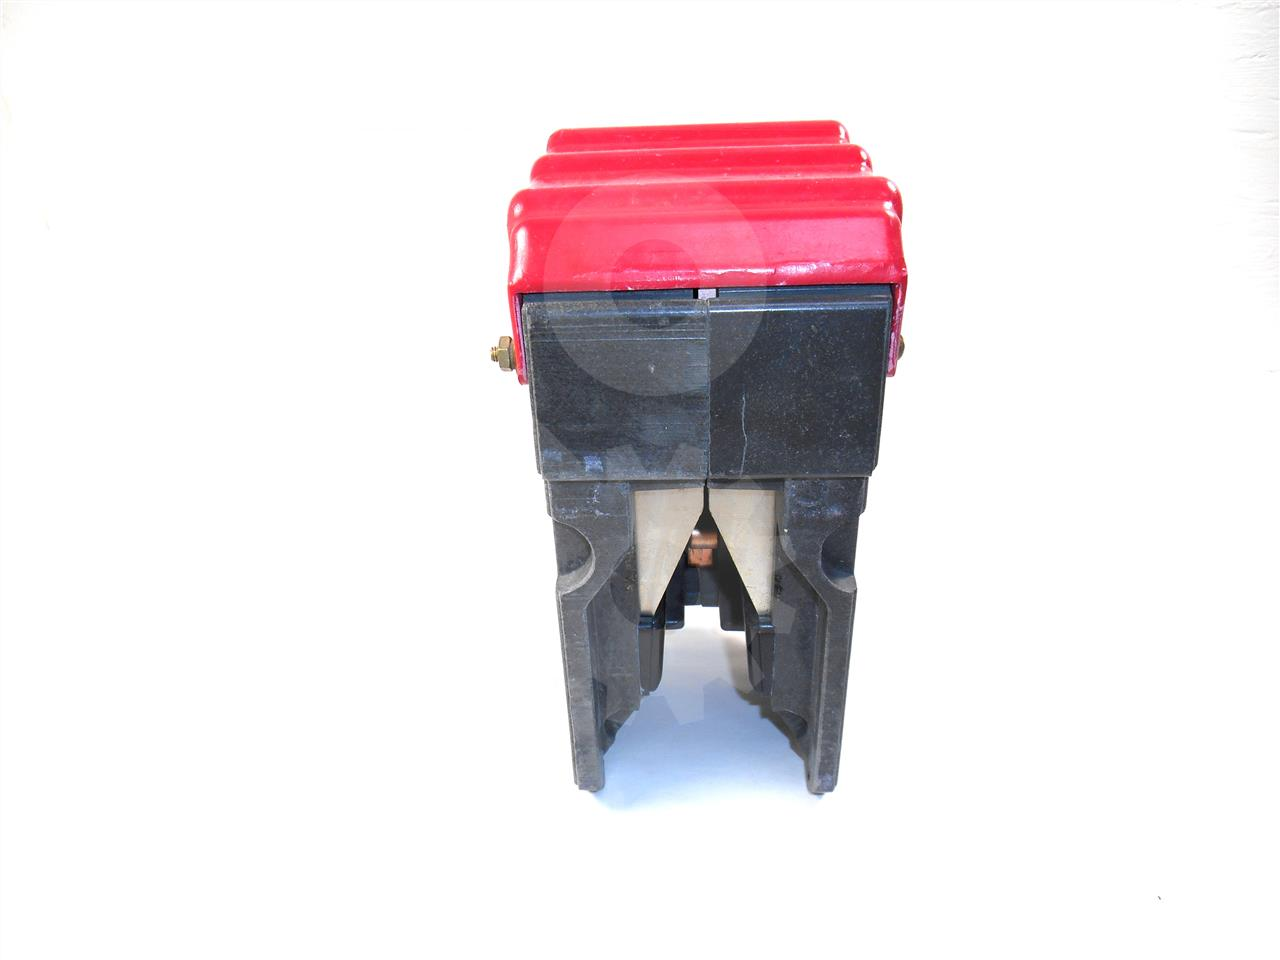 ABB / ITE / BBC ITE NON ASBESTOS ARC CHUTE ASSEMBLY RED